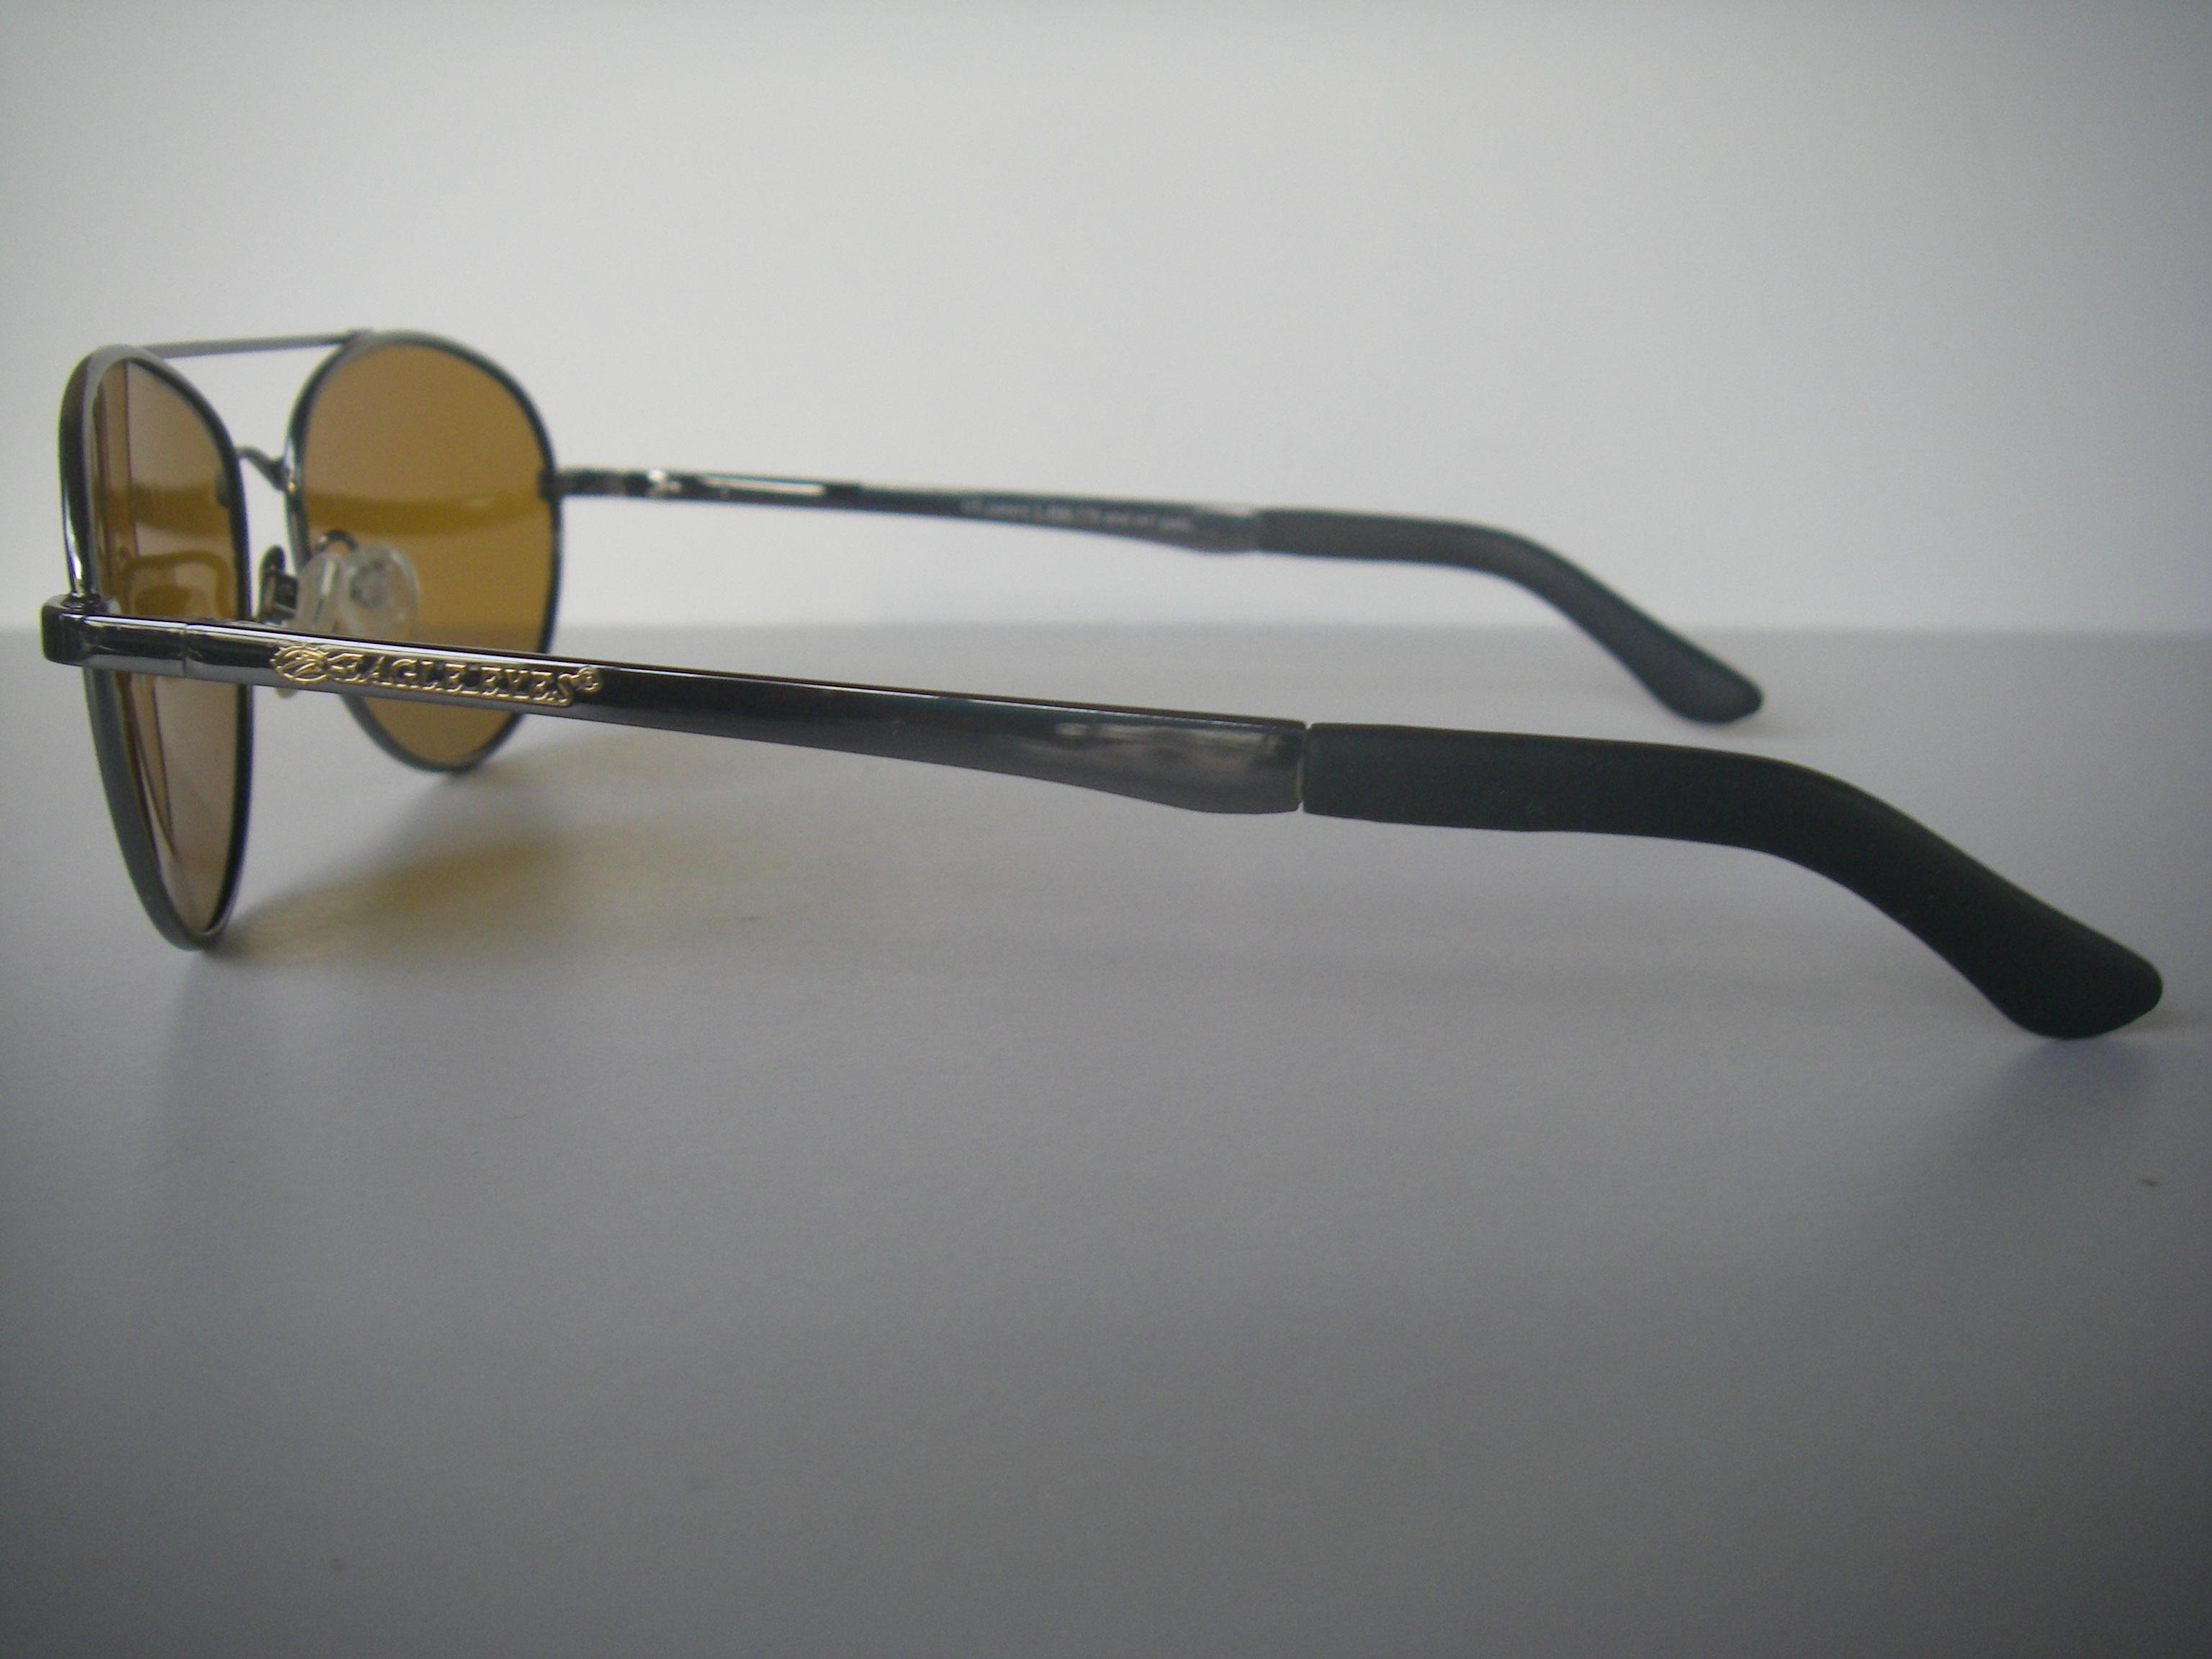 eagle eyes sunglasses qj5g  Eagle Eyes Eagle Eyes Explorer 10019 Aviator Sunglasses Amber Lens  Excellent Early Model